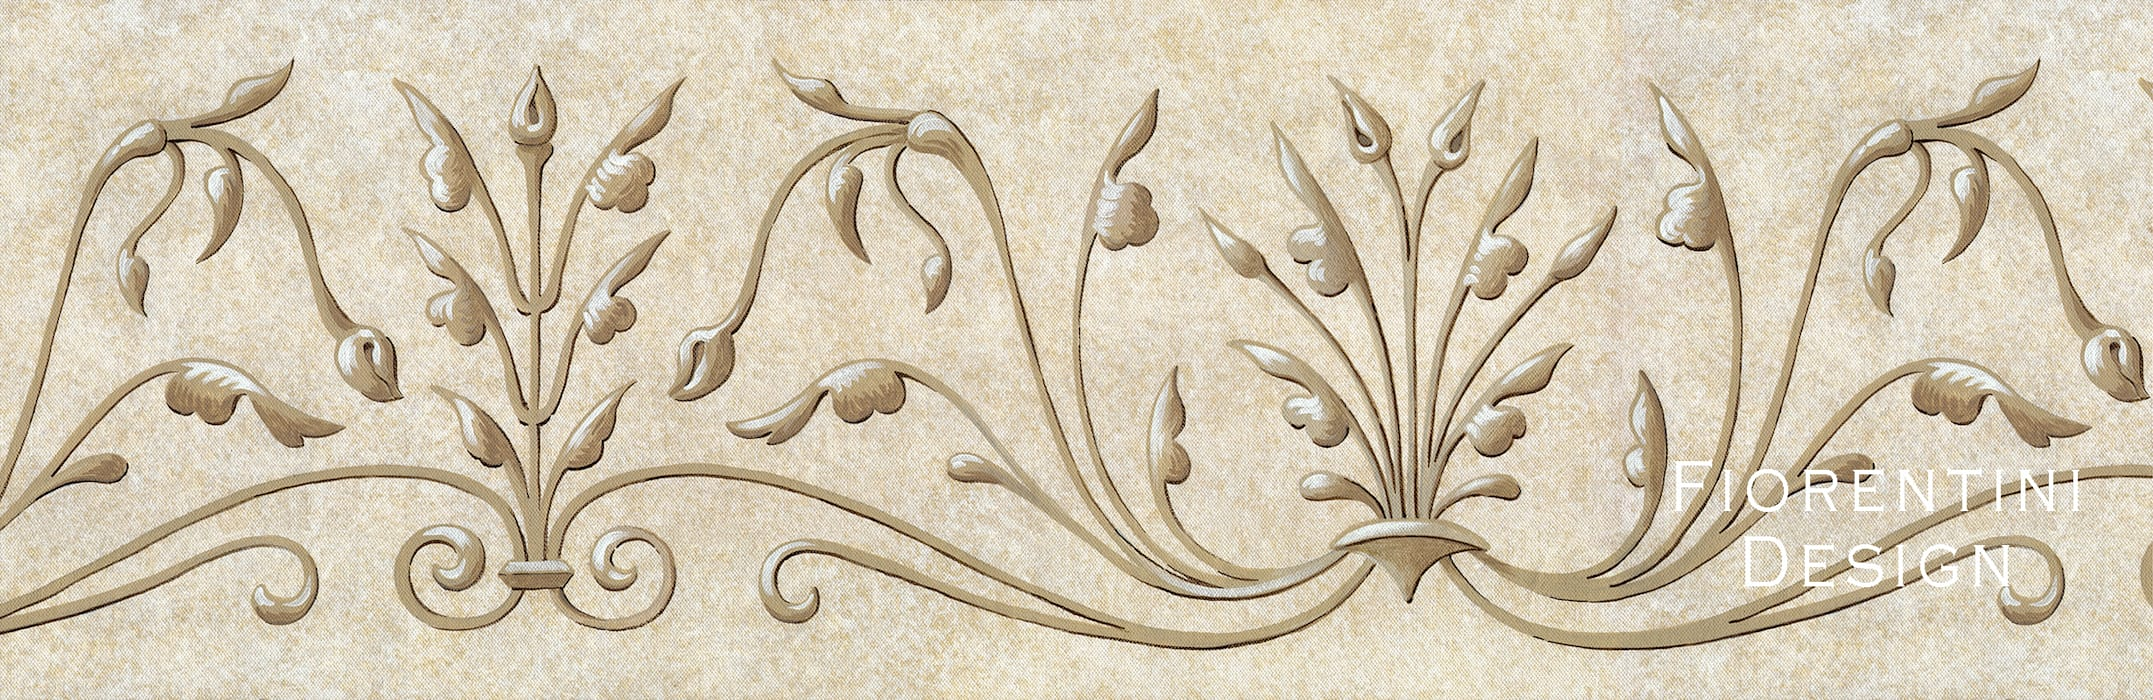 Renaissance Wallpaper Frieze Fiorentini Design Walls Beige